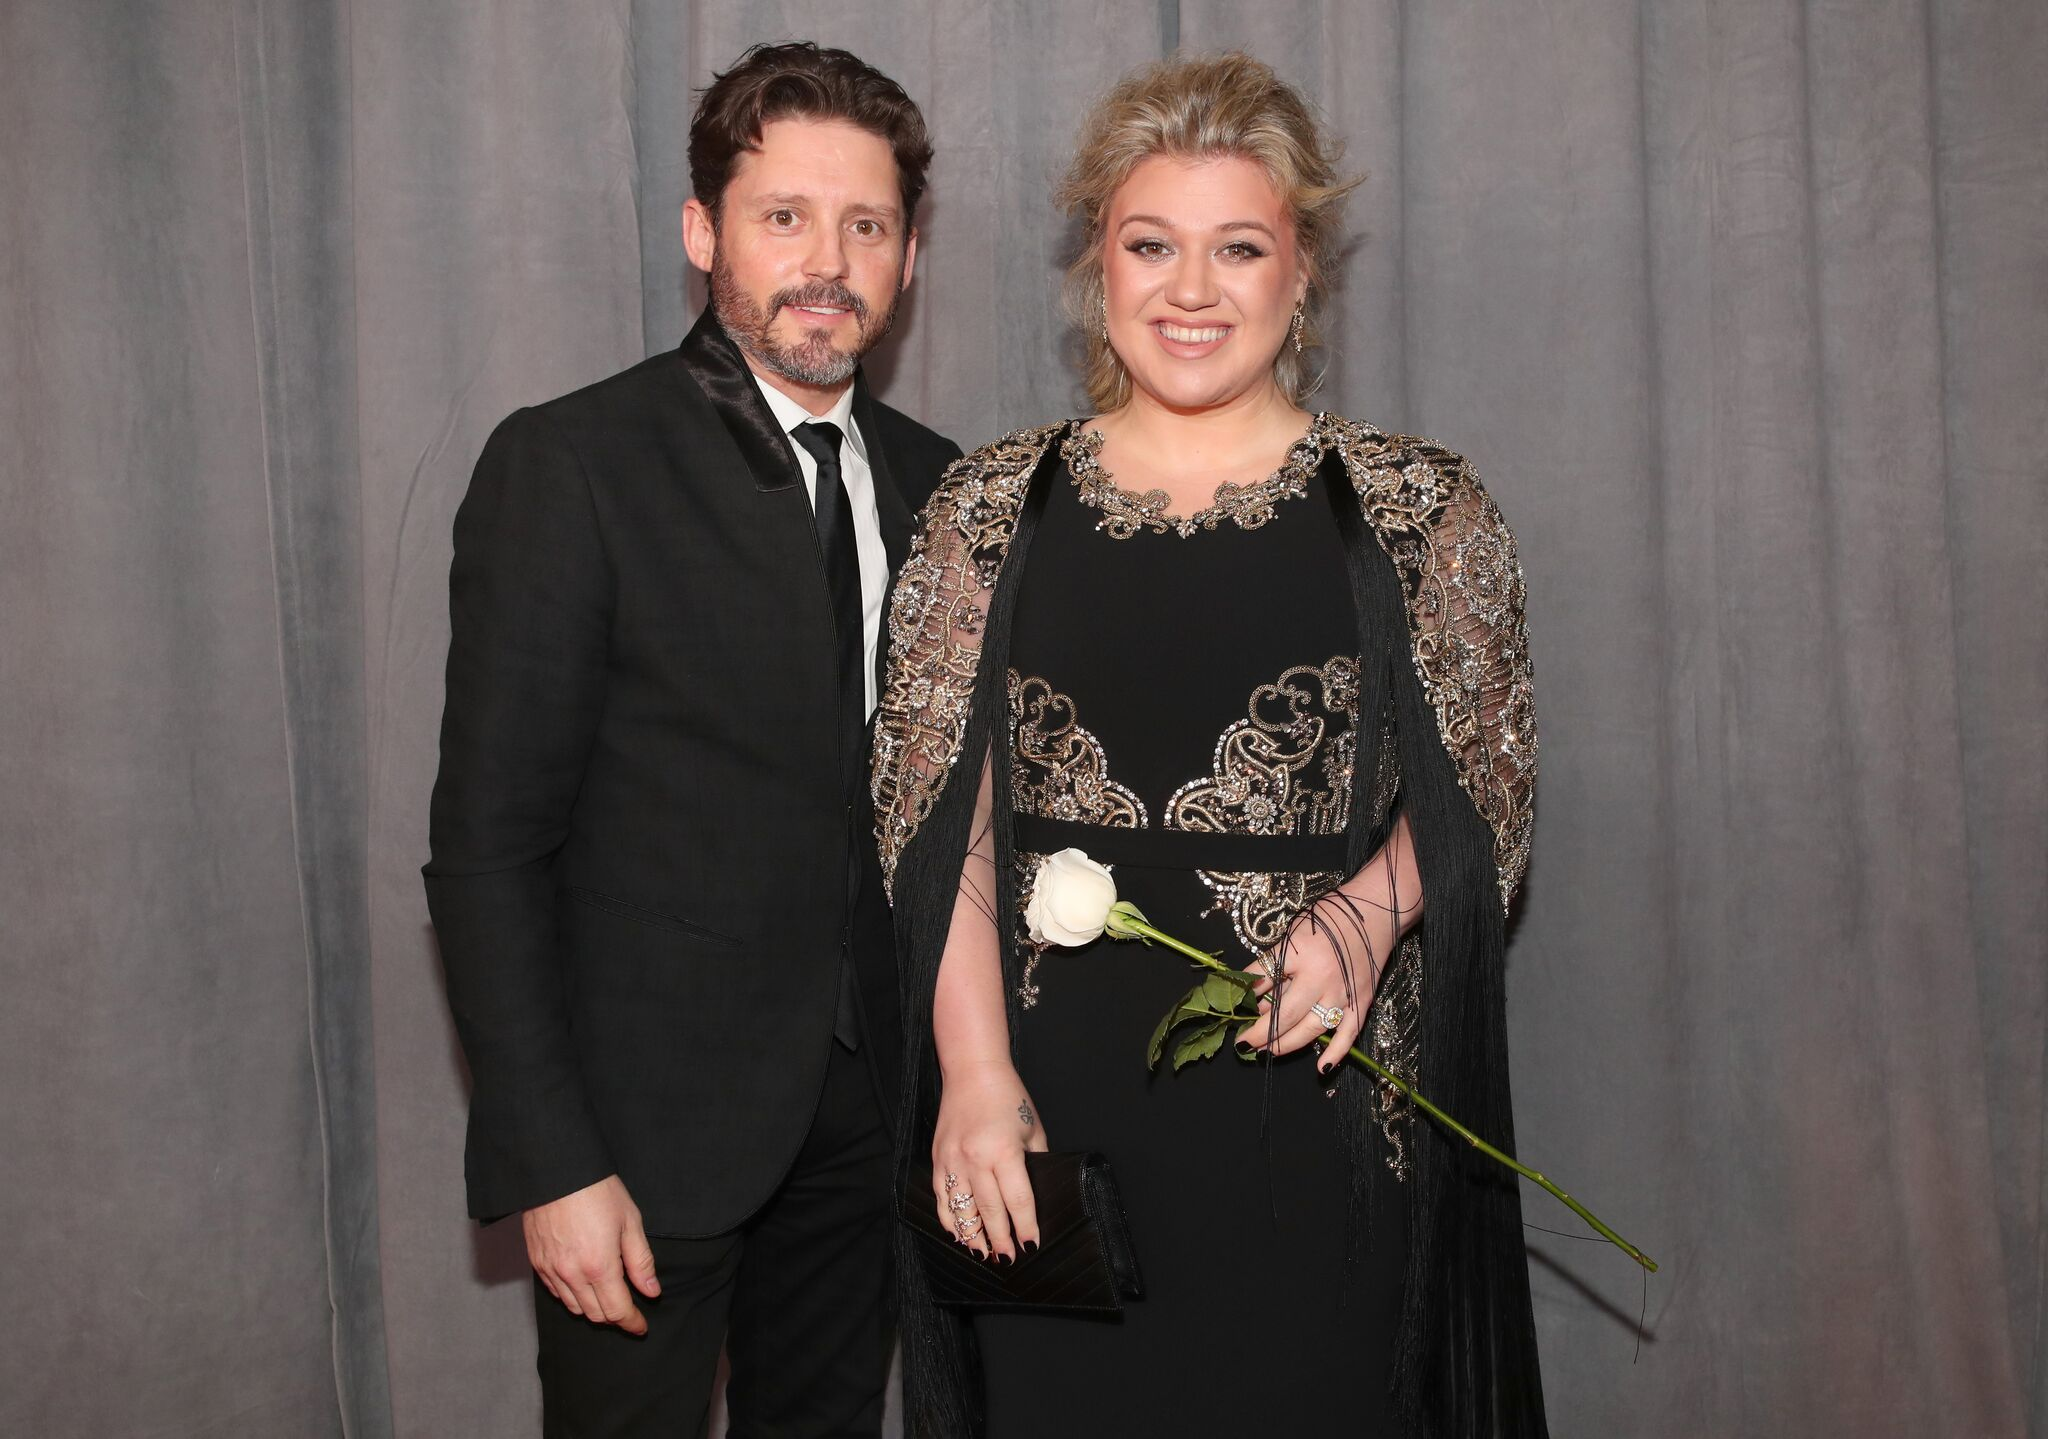 Brandon Blackstock and wife Kelly Clarkson at the 60th Annual GRAMMY Awards on January 28, 2018 | Photo: Getty Images